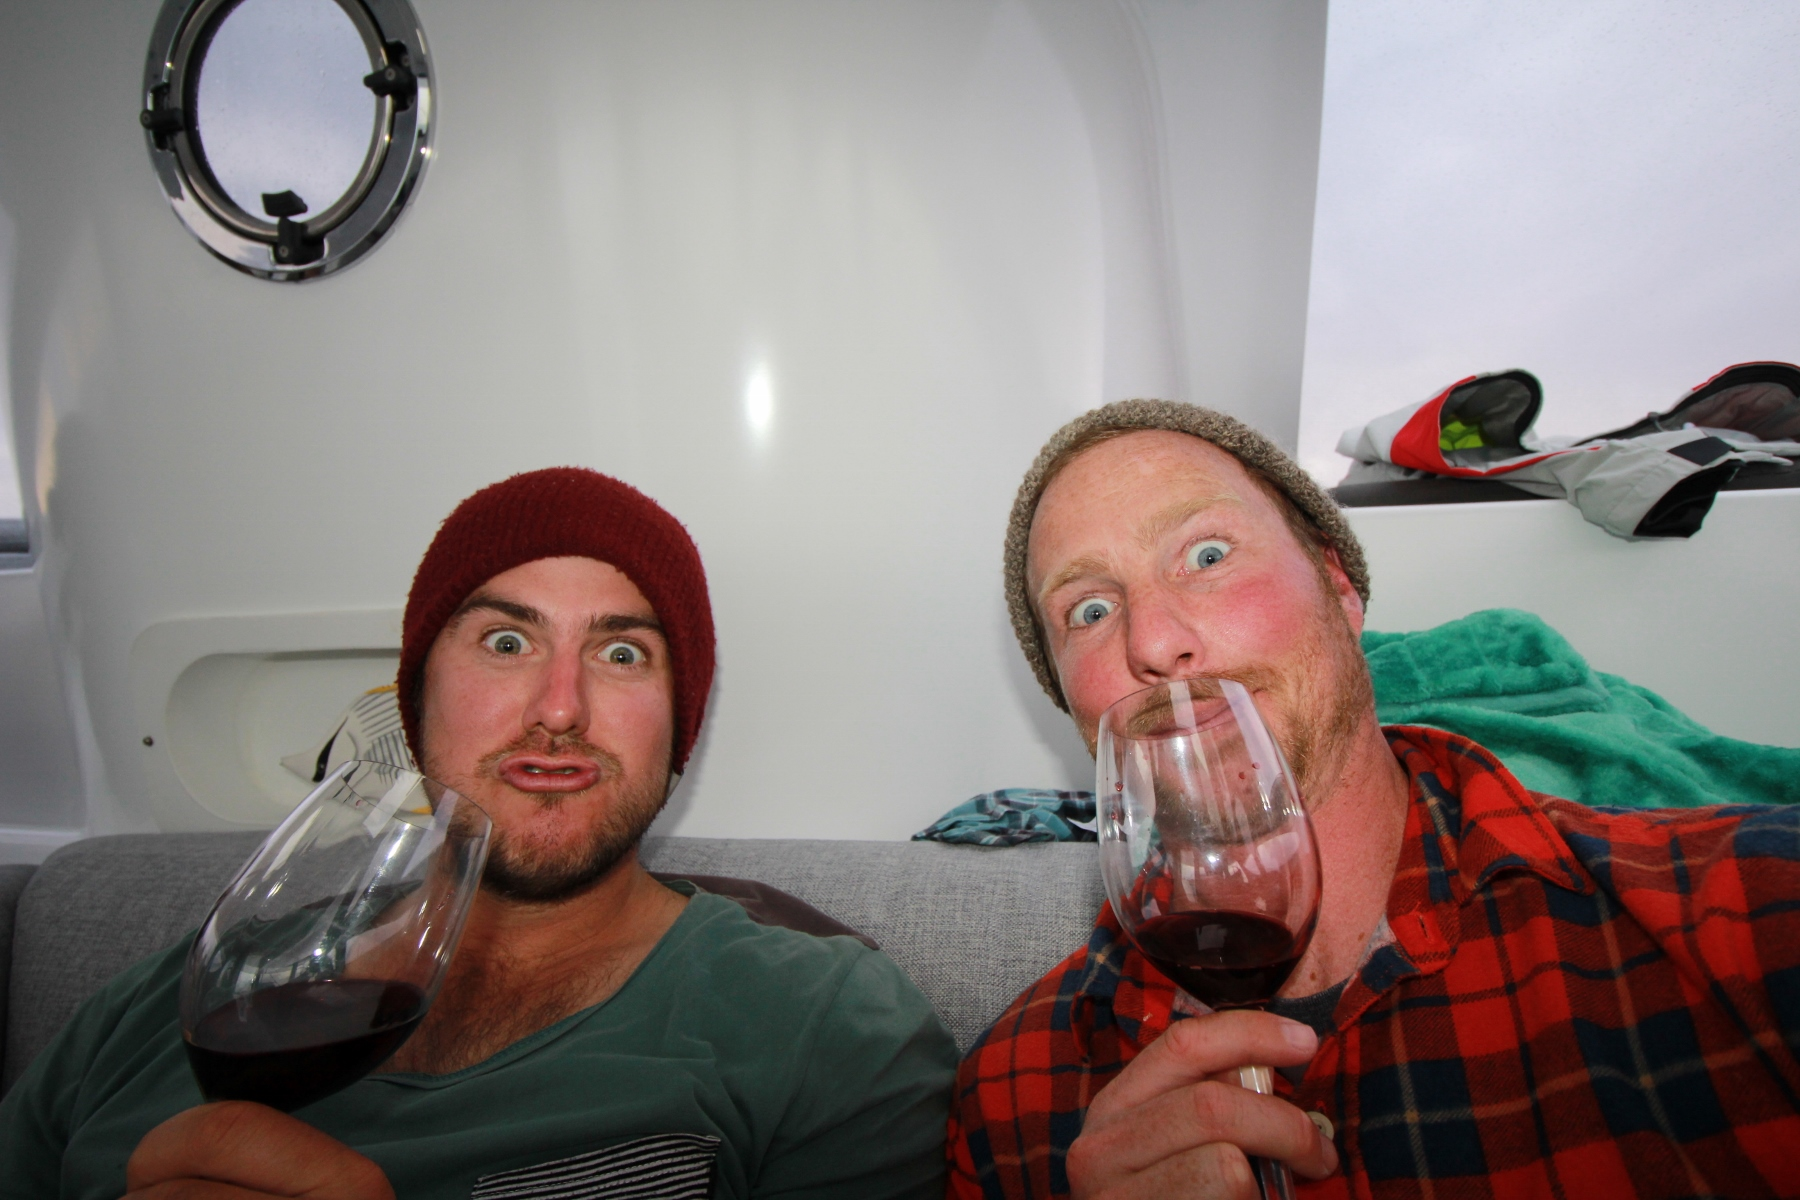 Sorry lads had to do it .... wine connoisseurs , Roland oxygenating the wine and Benn sniffing the aromas.